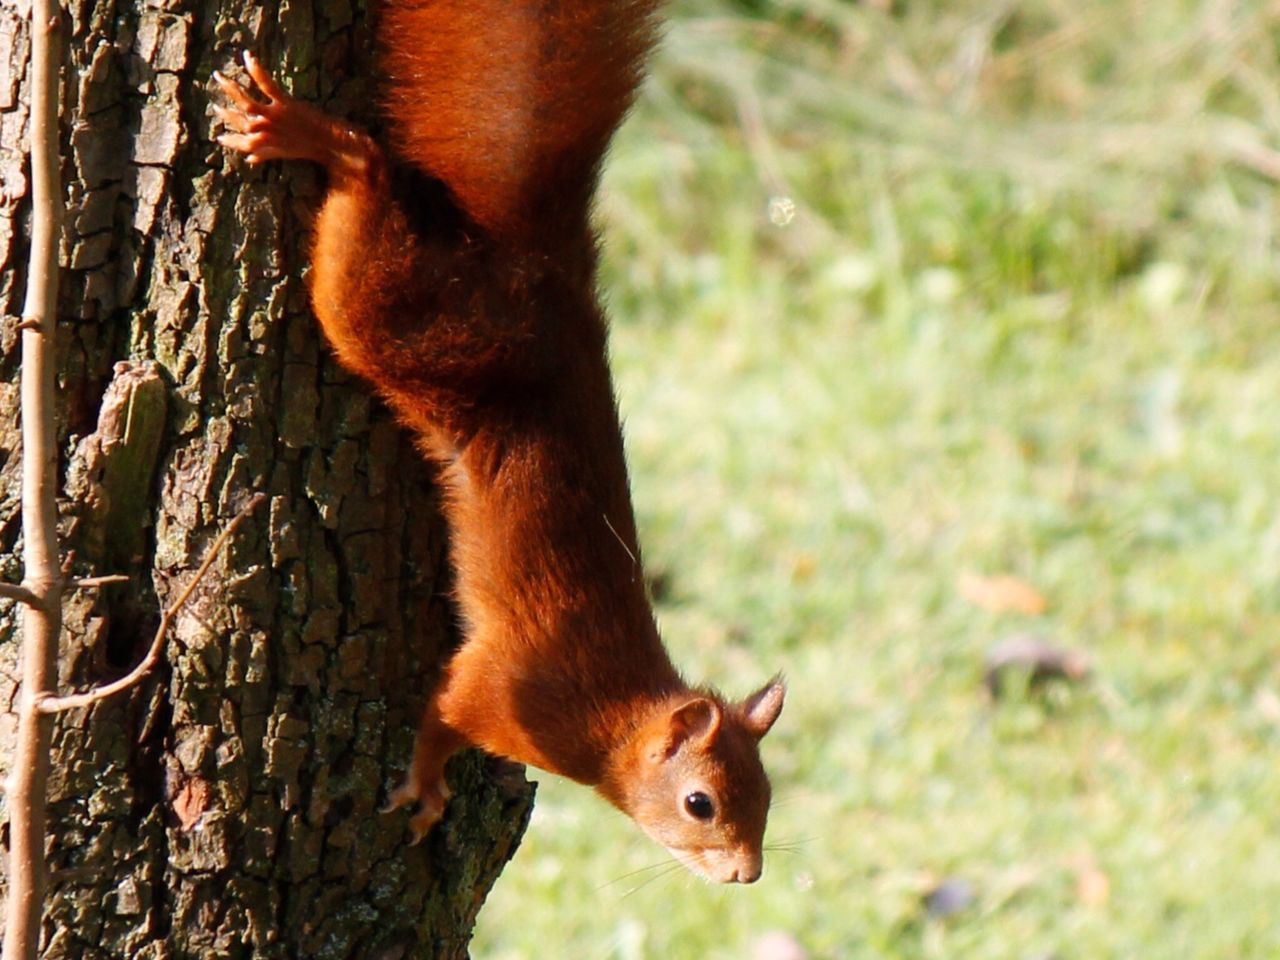 one animal, animal themes, mammal, squirrel, animals in the wild, animal wildlife, day, no people, nature, focus on foreground, outdoors, tree, close-up, red panda